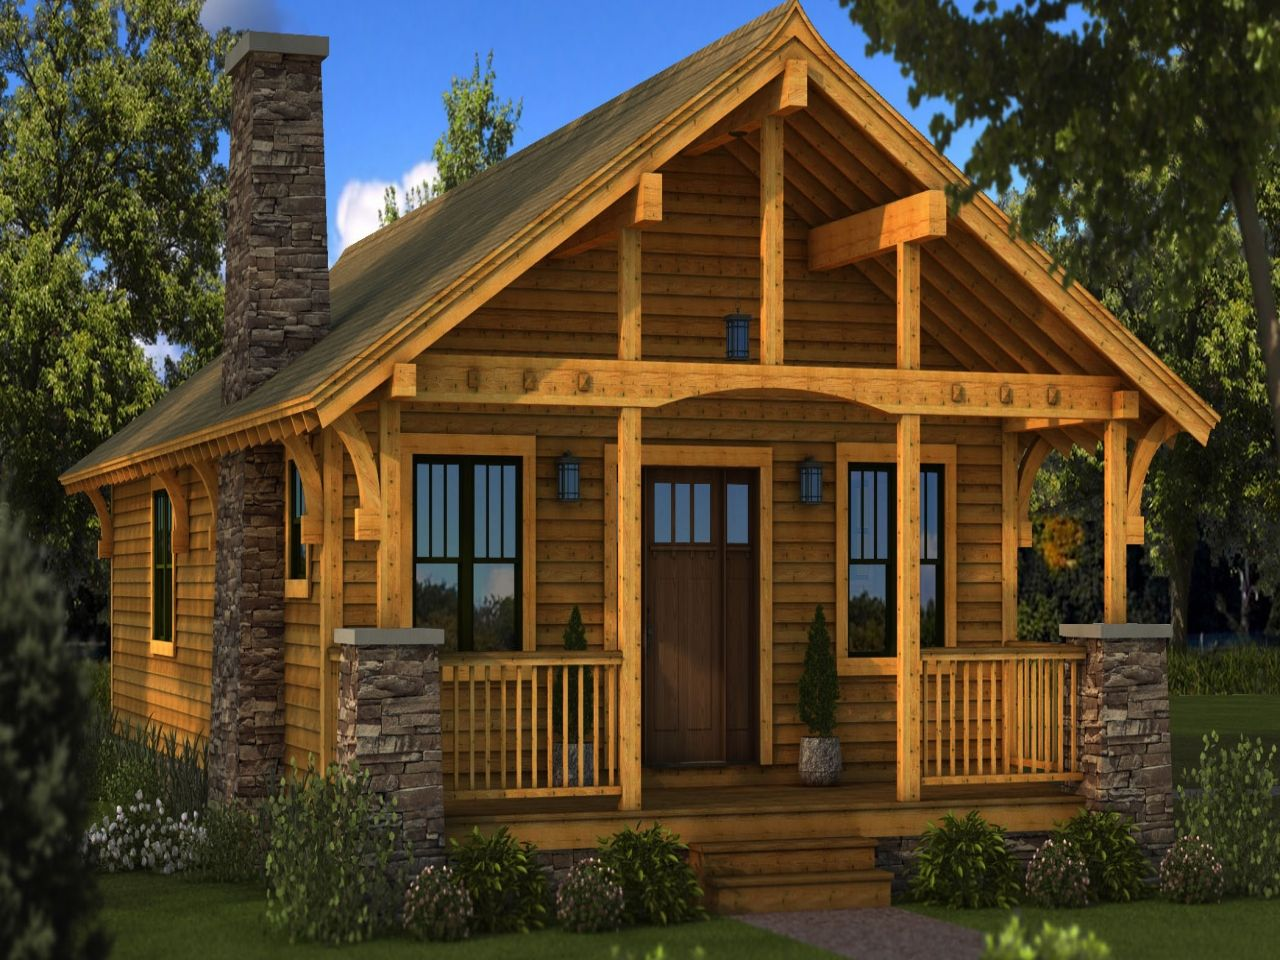 Small log cabin homes plans one story cabin plans for One story log home plans